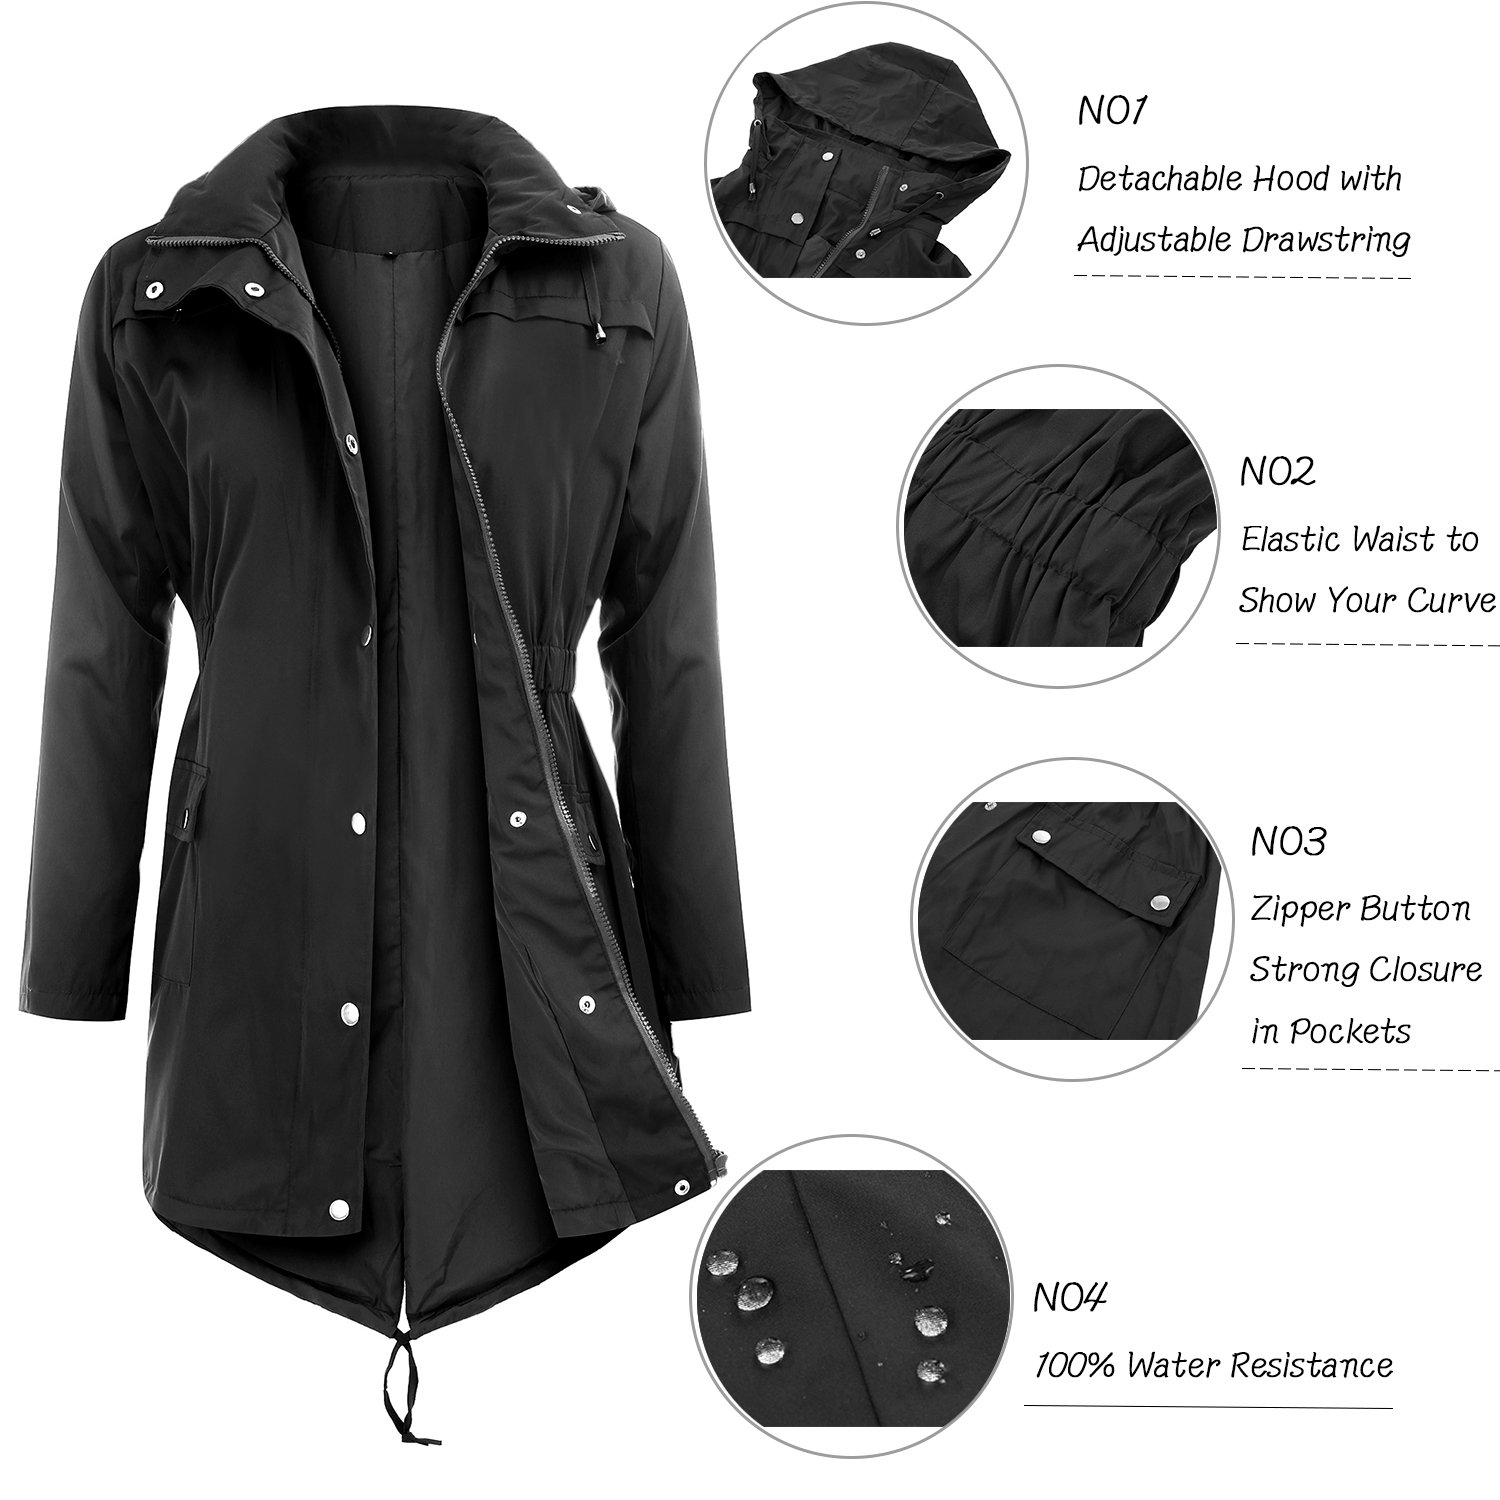 Uniboutique Raincoats Waterproof Lightweight Rain Jacket Active Outdoor Hooded Women's Trench Coats,Black,Medium